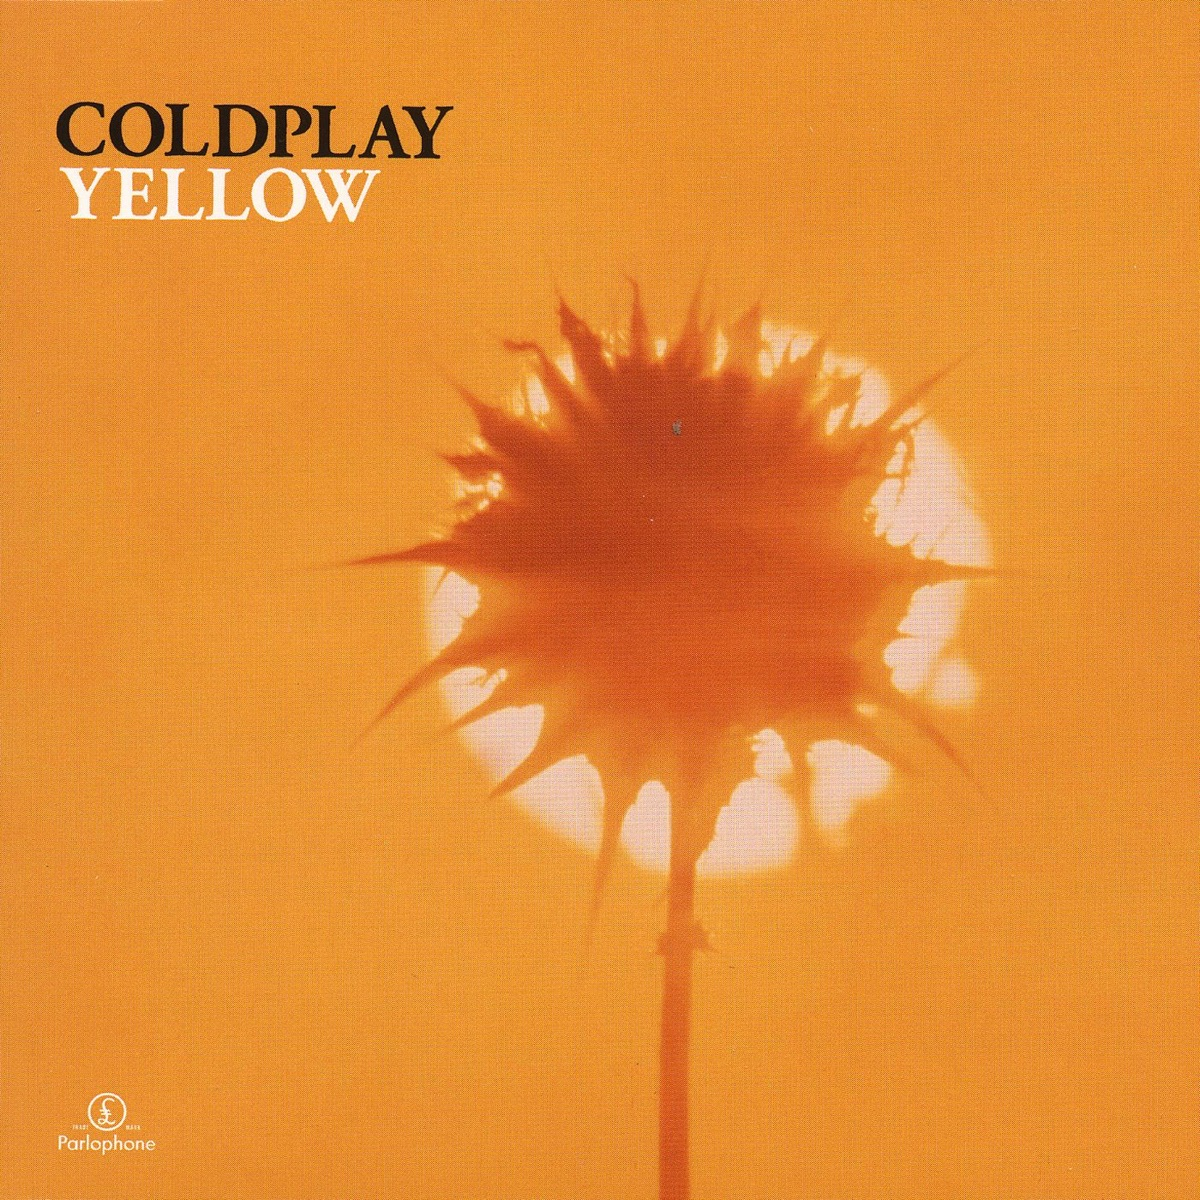 Yellow - Single Album Cover by Coldplay